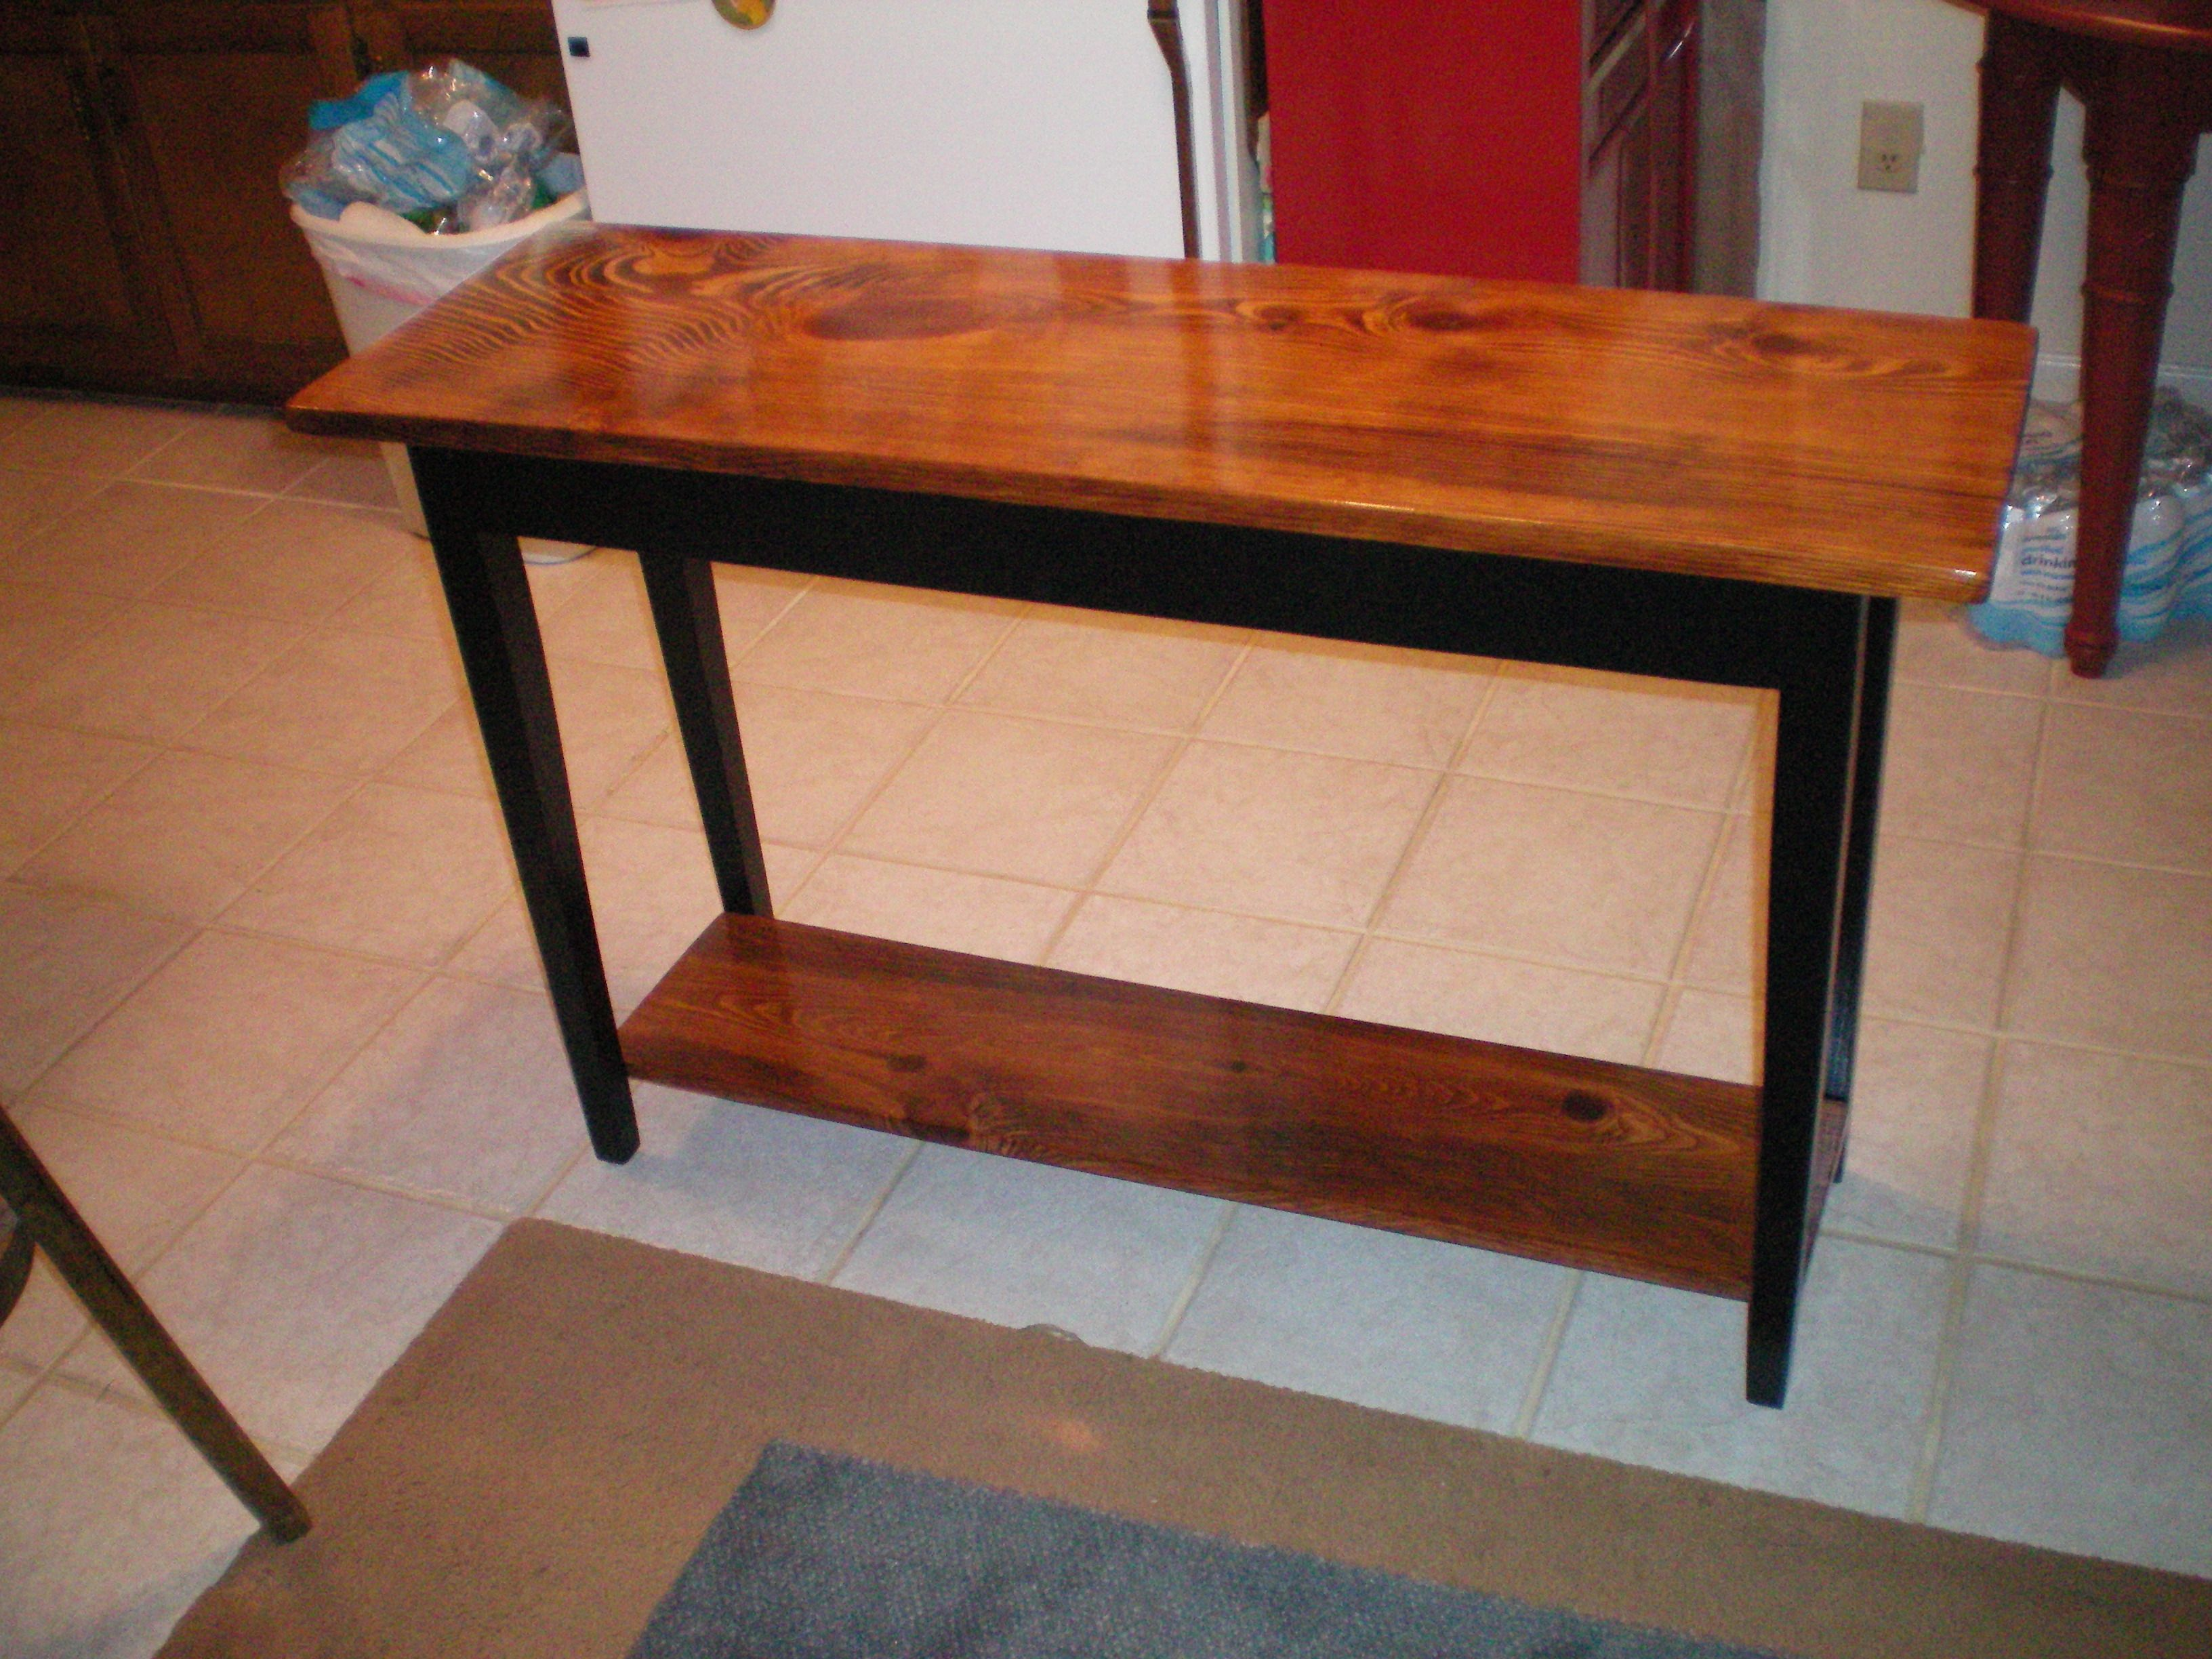 Just Got Done Making This Rustic Shaker Style Sofa Table With A